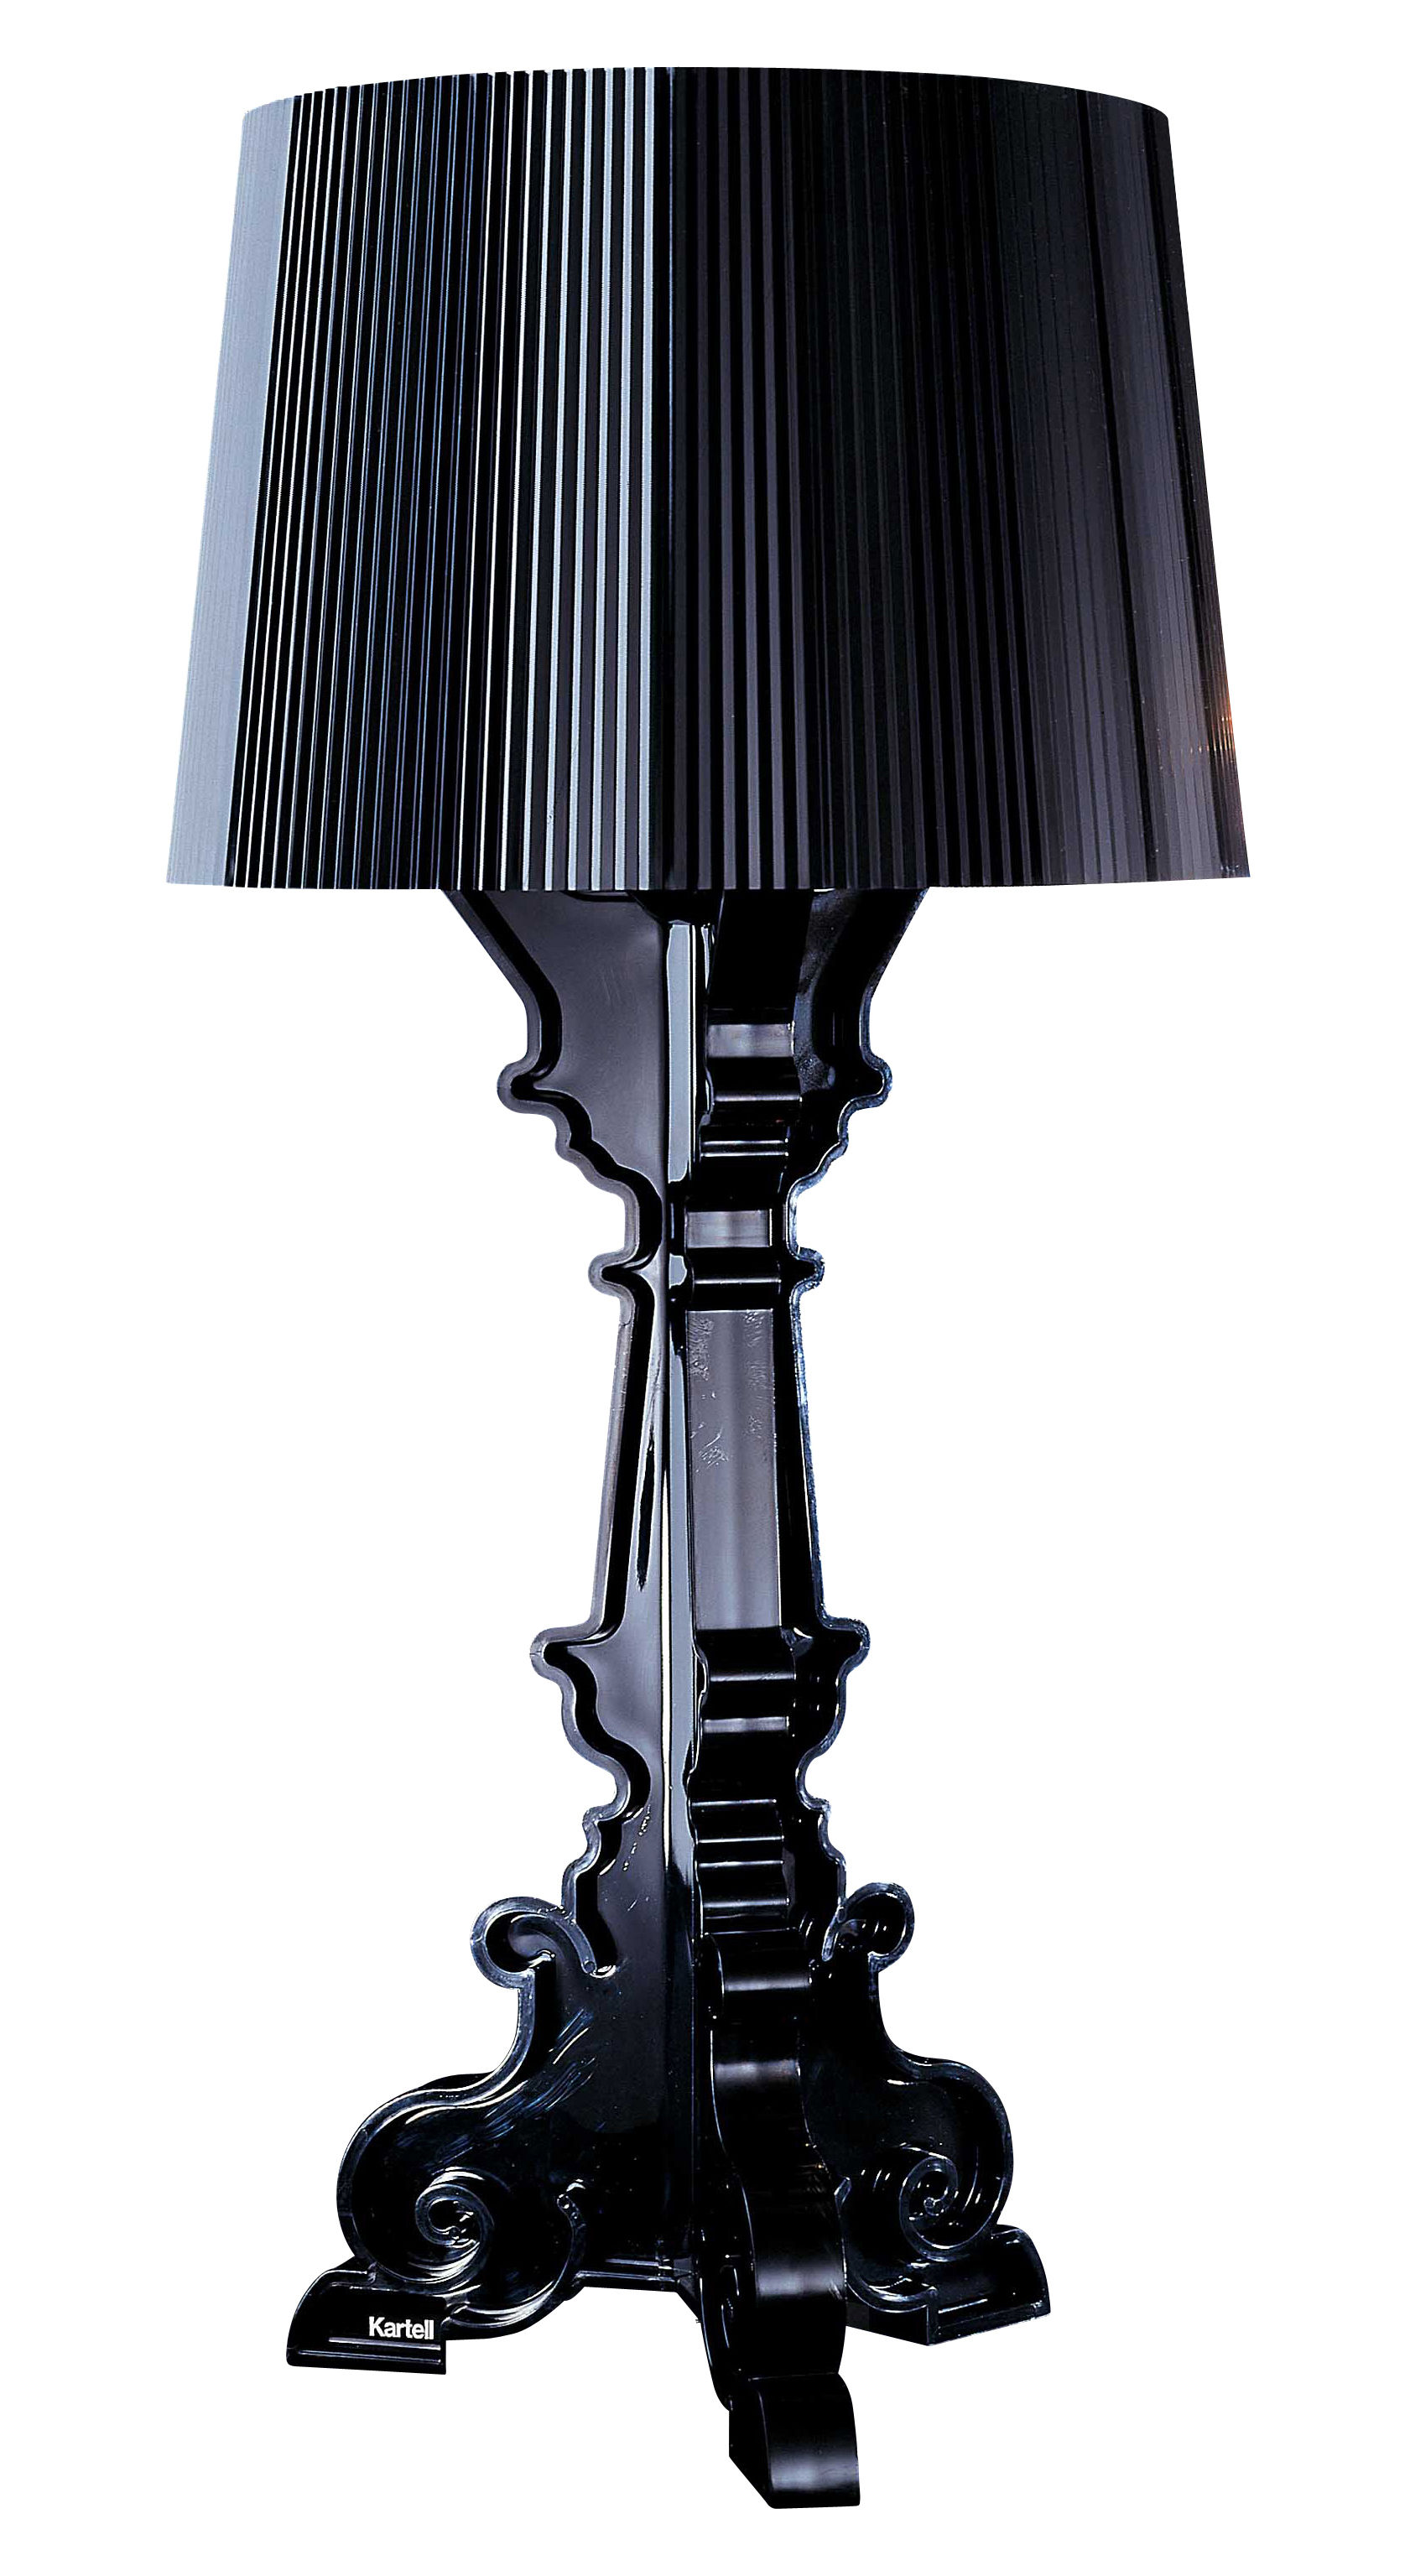 bourgie table lamp black by kartell. Black Bedroom Furniture Sets. Home Design Ideas